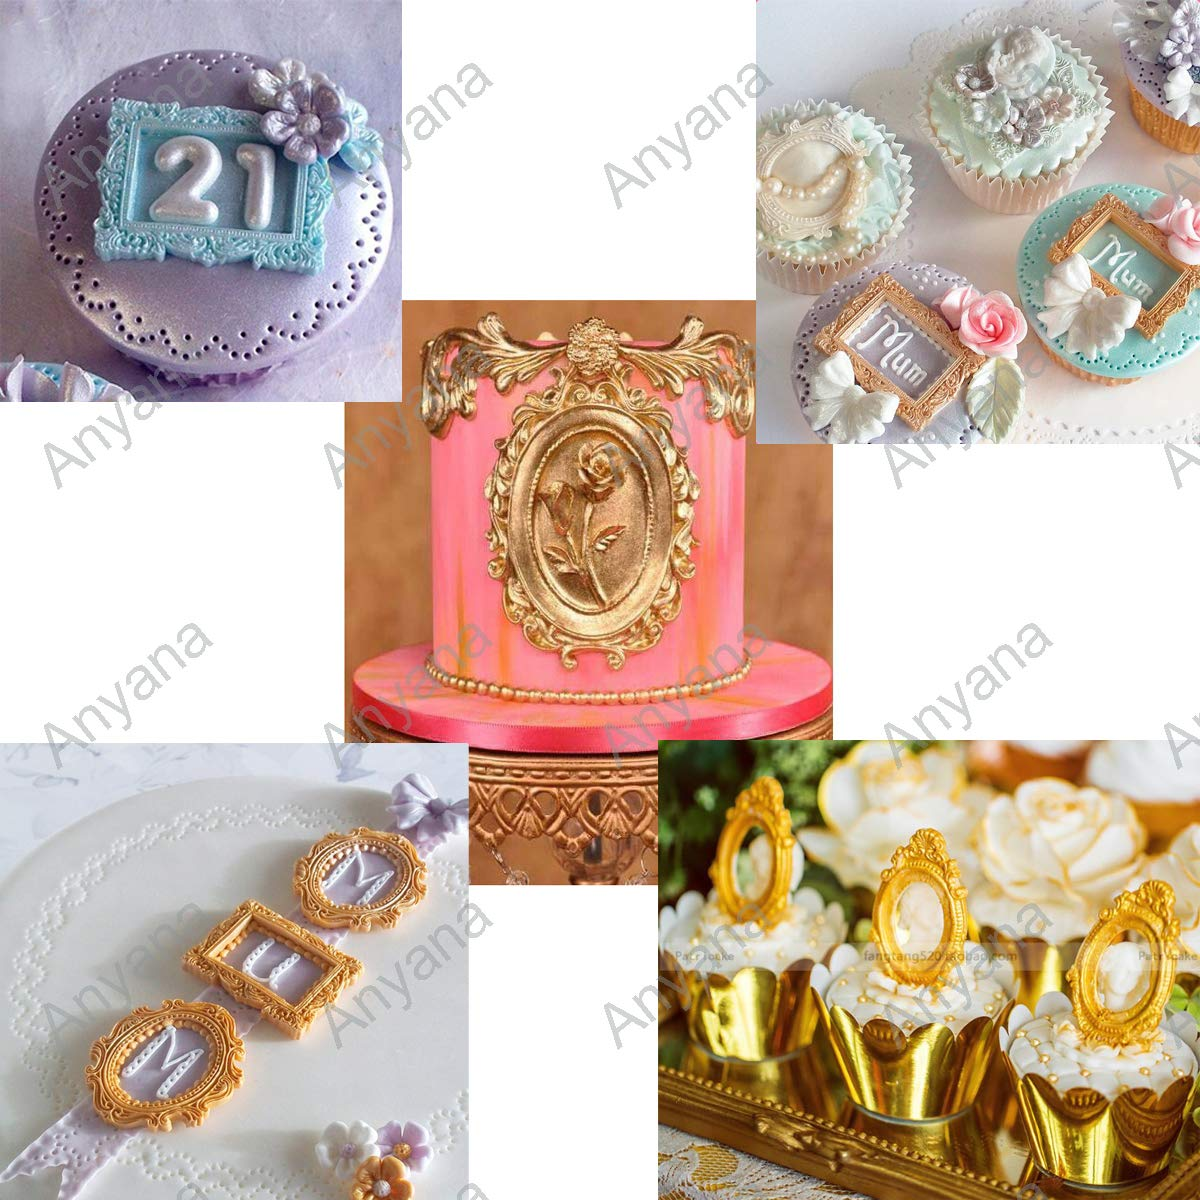 Anyana picture frame Baking Molds mirror frame Silicone Fondant molds wedding Cake Decorating Tools Gumpaste rectangle oval cupcake topper decorations resin Clay Chocolate Candy Molds set of 2